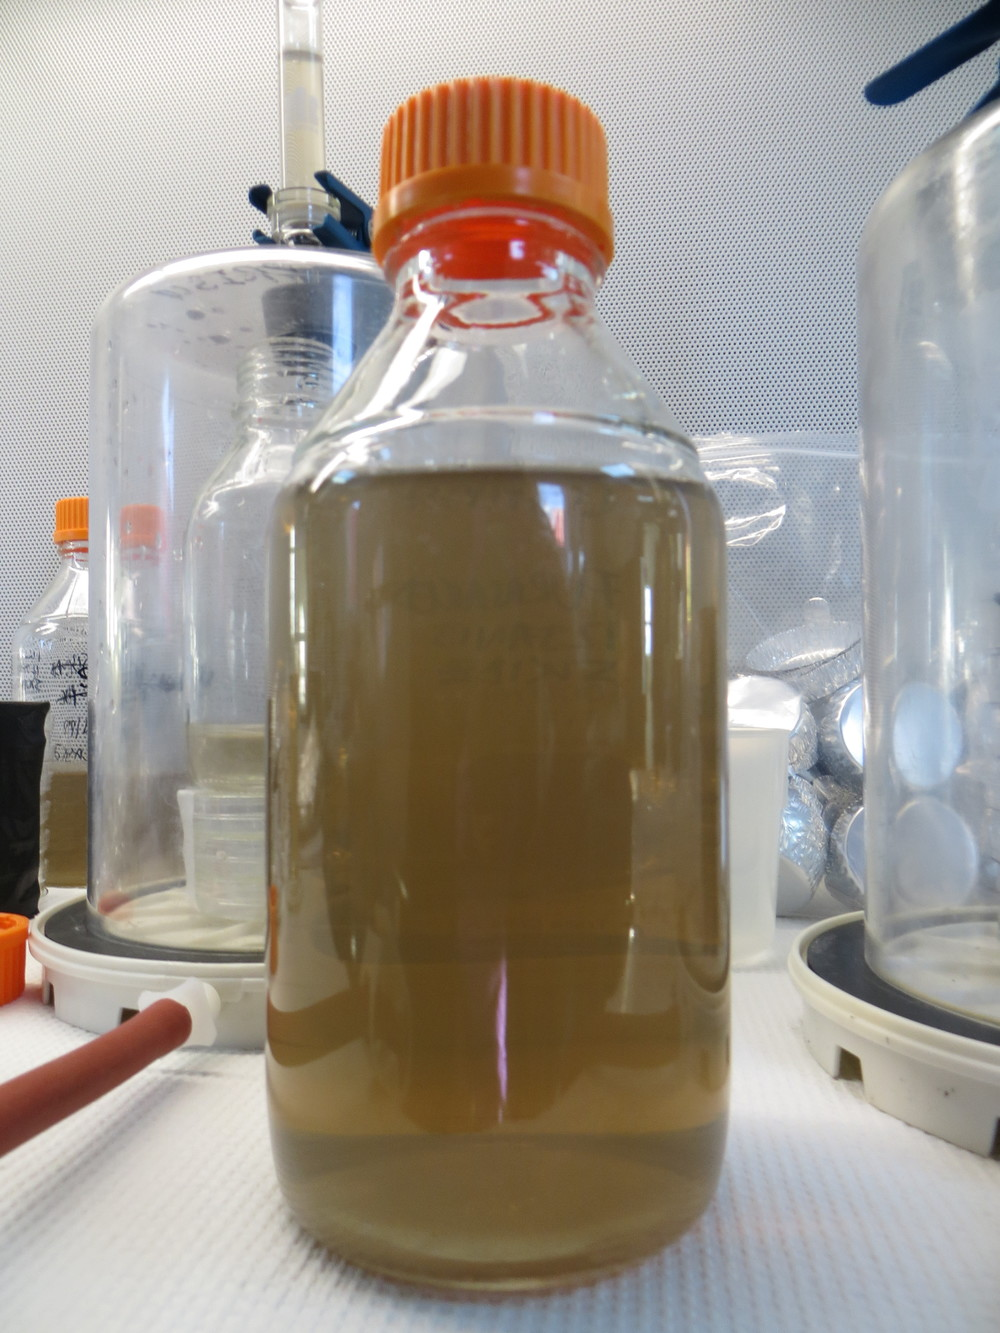 Water from Subglacial Lake Whillans, ready to be filtered.